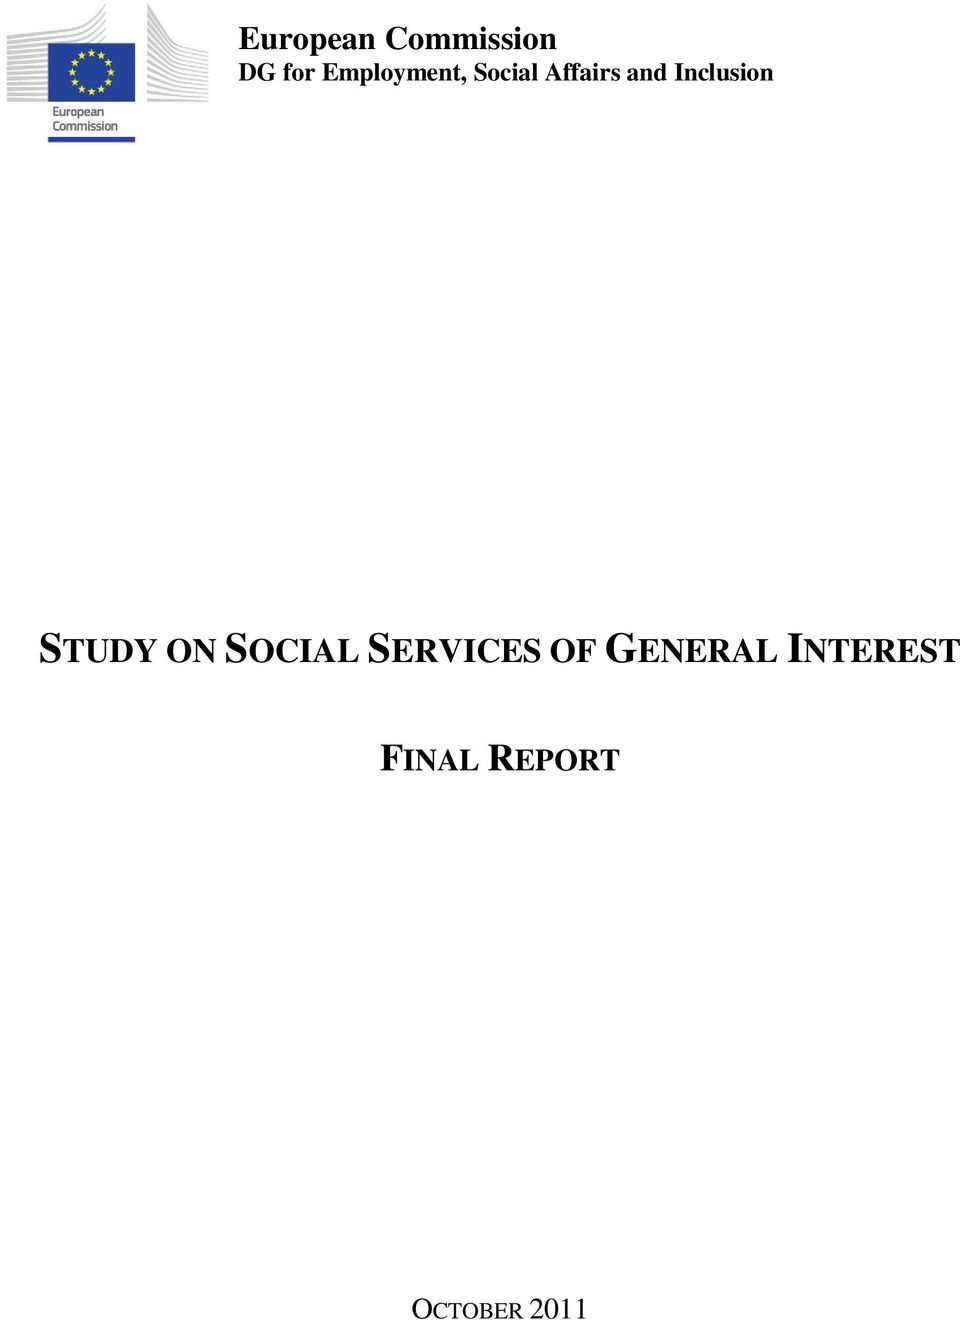 Inclusion STUDY ON SOCIAL SERVICES